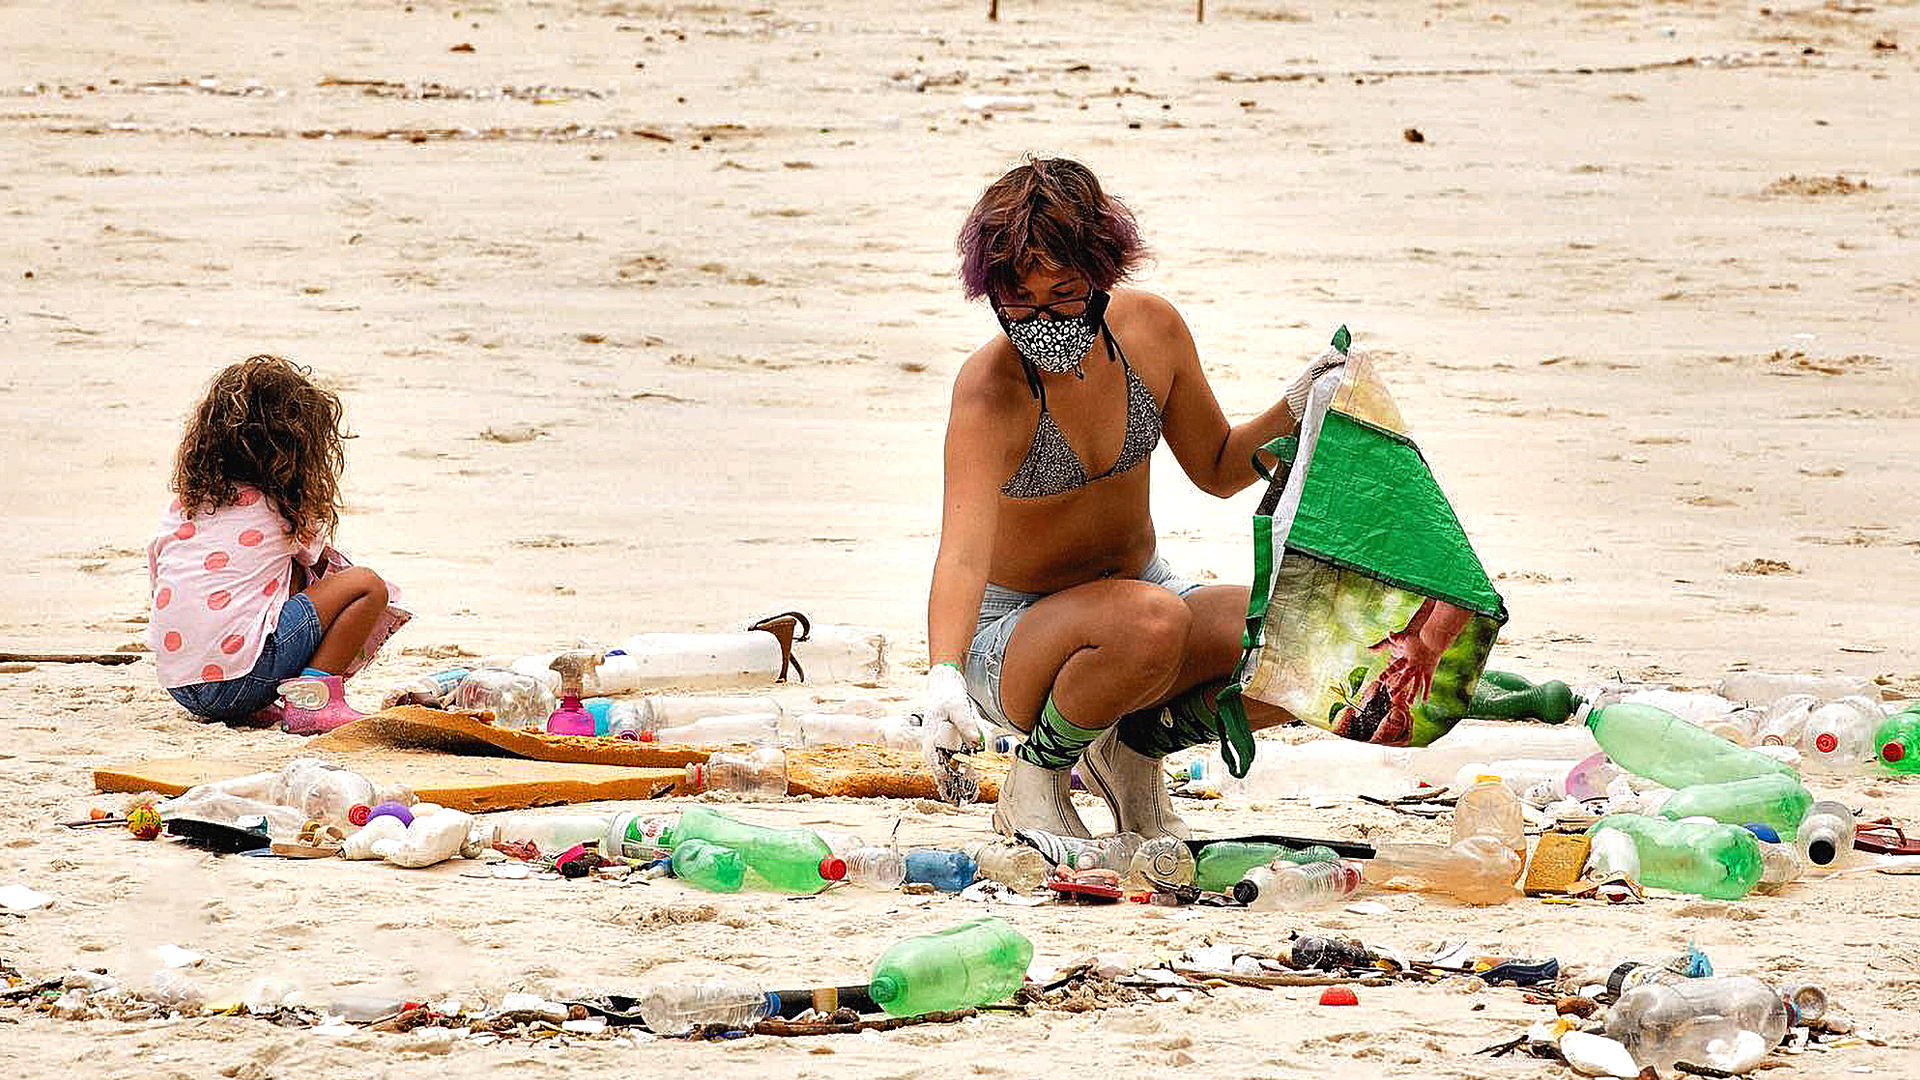 VIDEO: Waves of Rubbish Lap Against Idyllic Brazil Beach After Storm